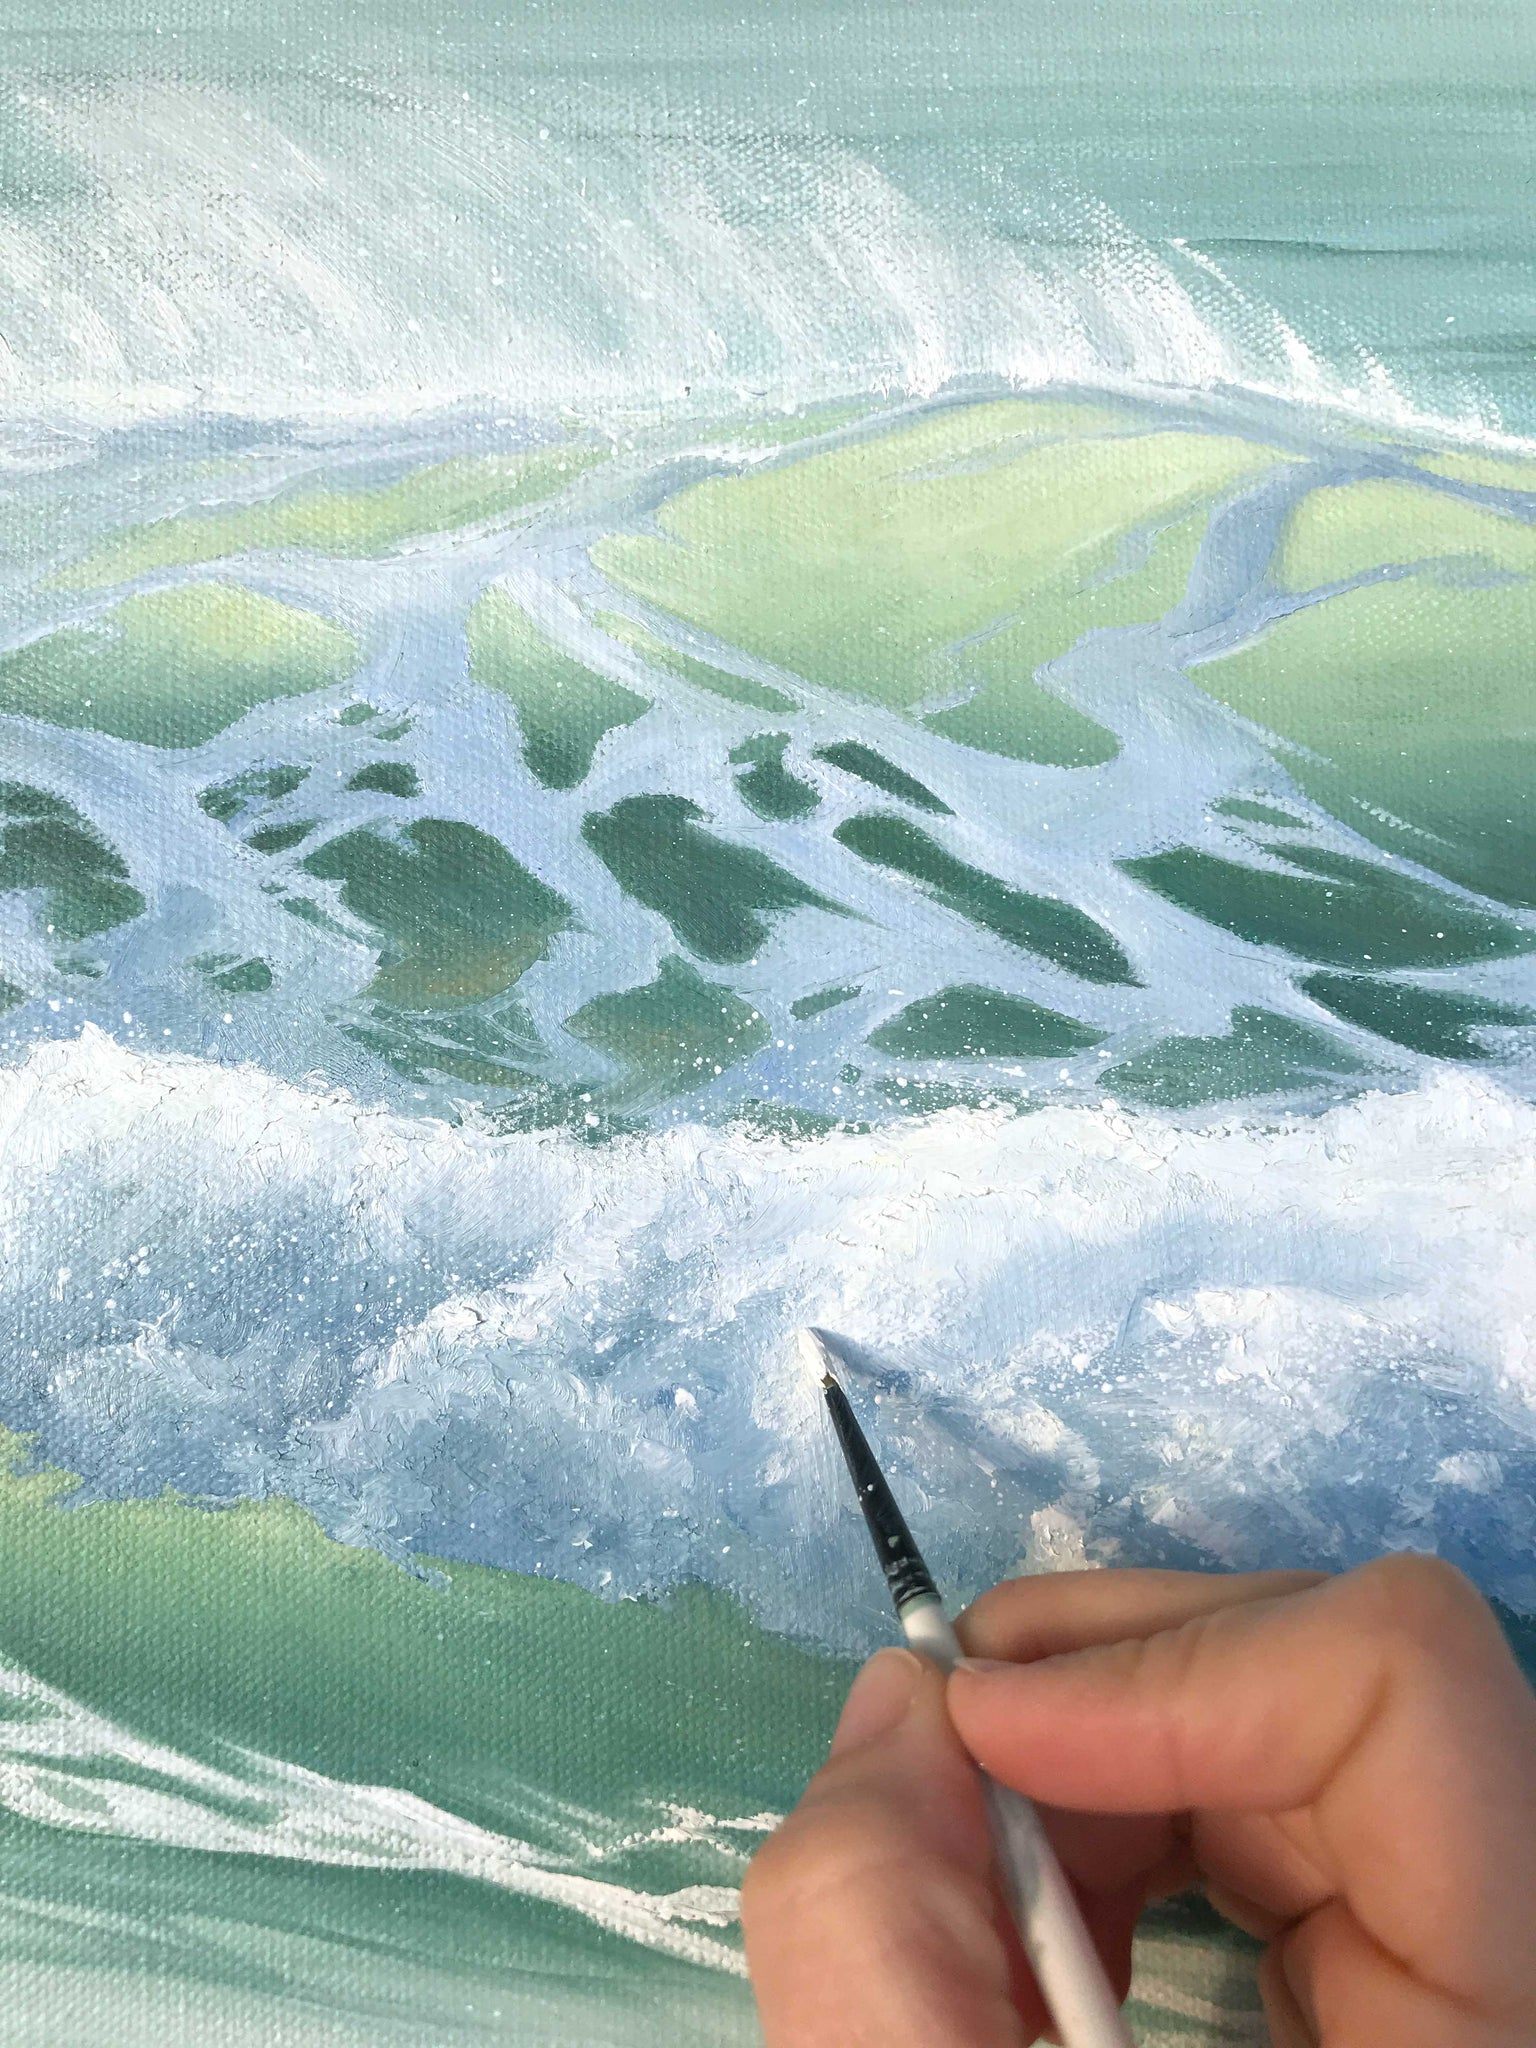 Painting Glowing Waves with Foam and spray Ocean Artwork